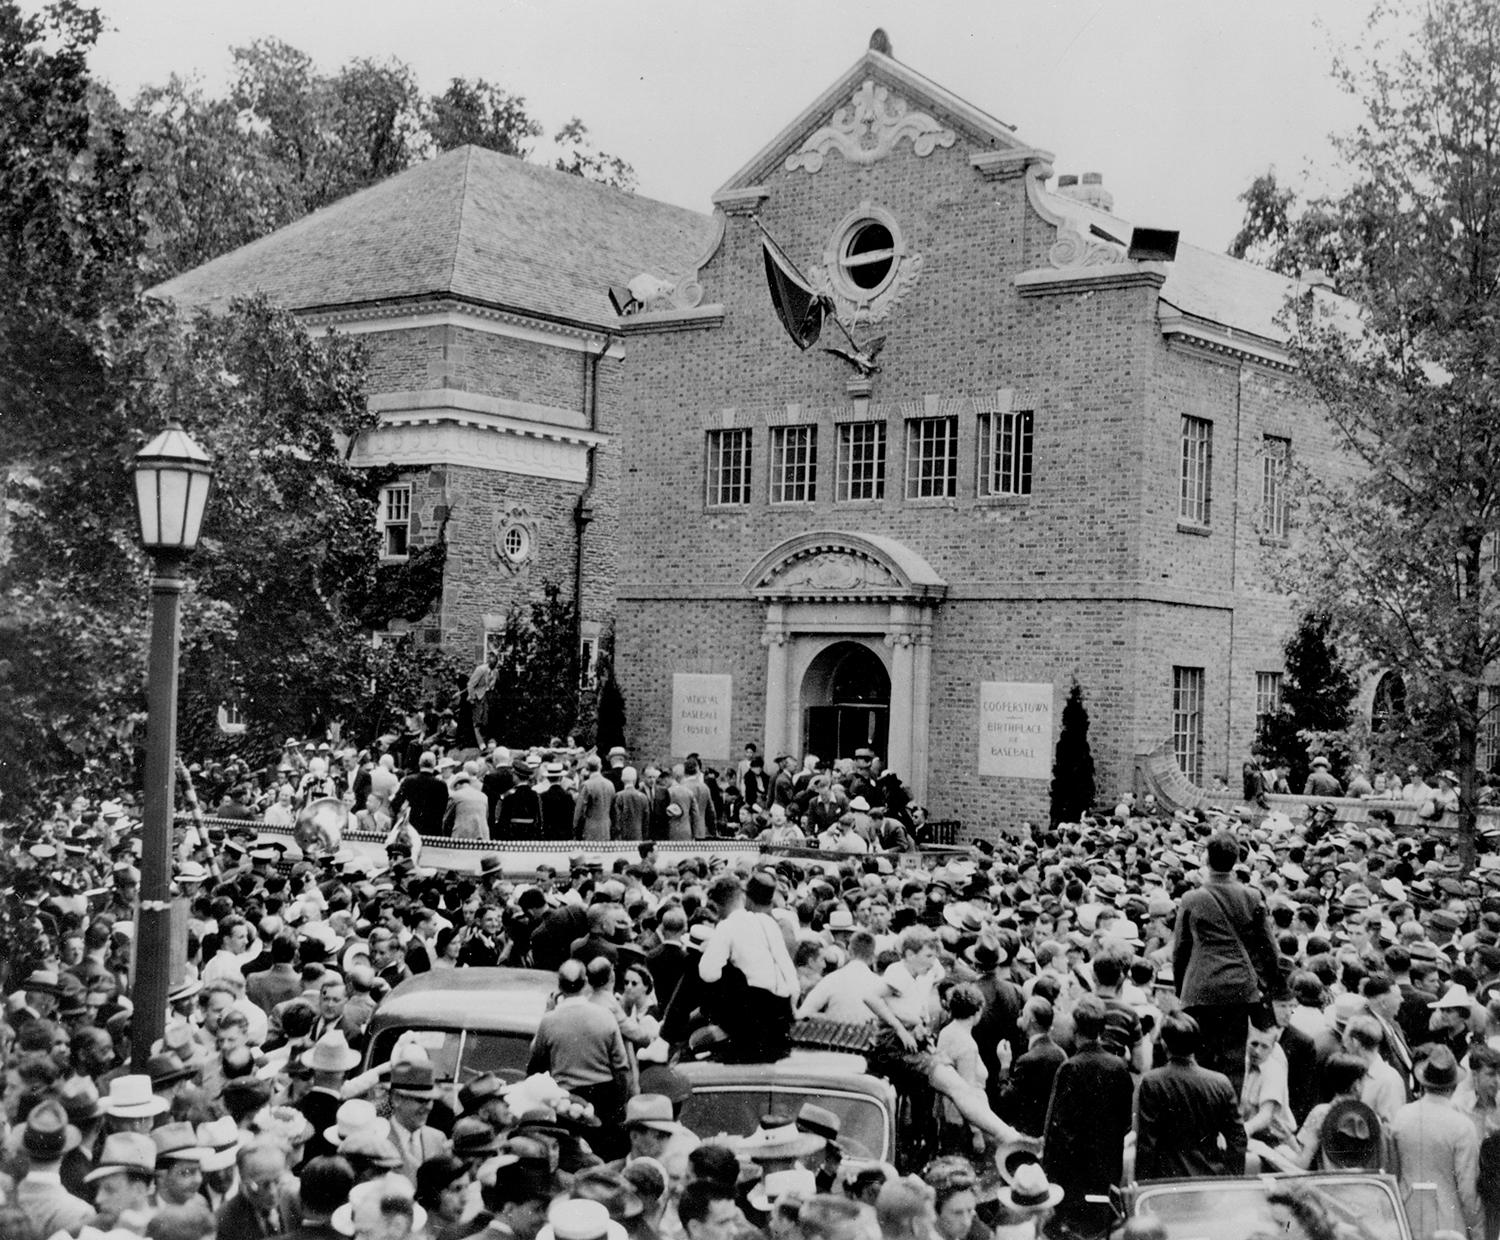 Fans gather in front of the Hall of Fame on June 12, 1939 for the first induction ceremony. (Homer Osterhoudt/National Baseball Hall of Fame and Museum)